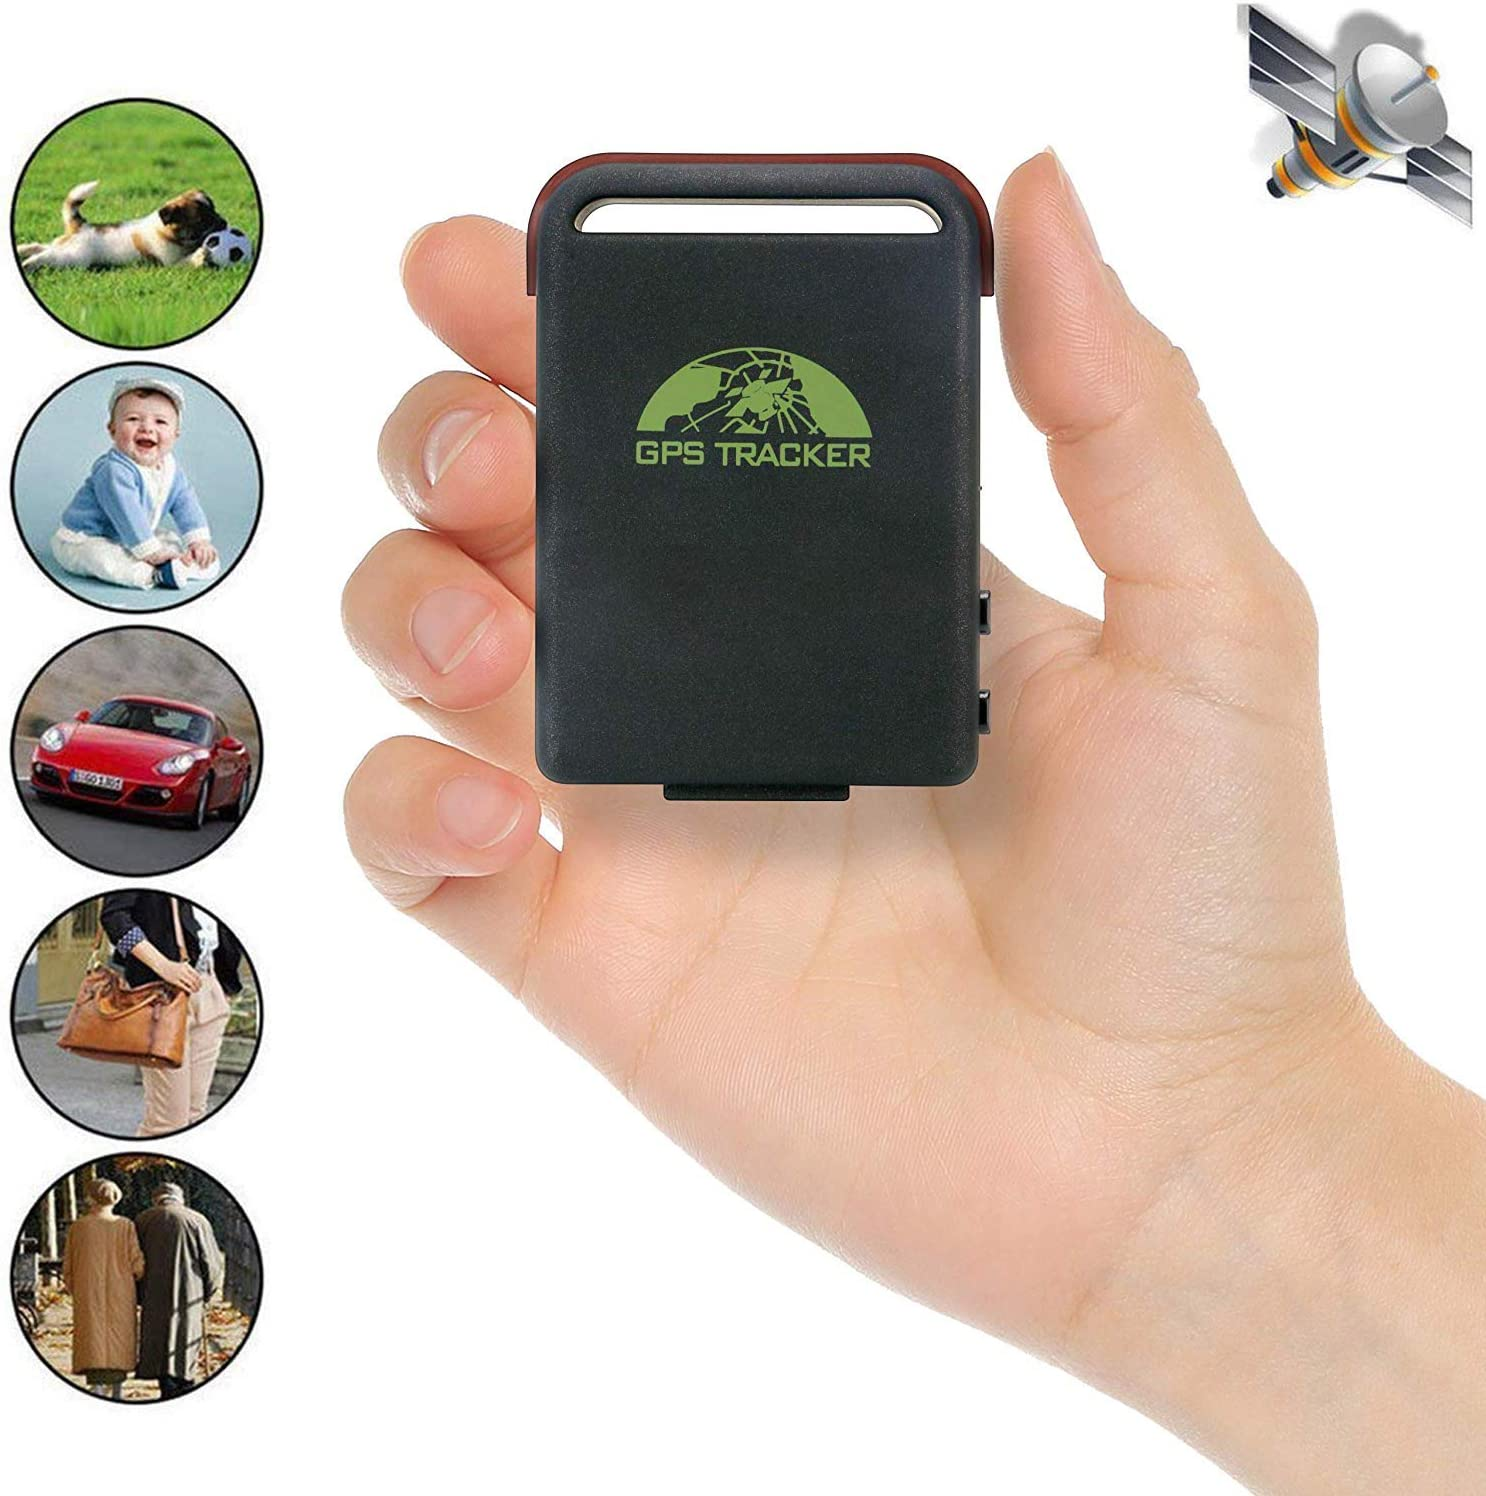 GPS Tracker Detector for Vehicles Cars Kids Dogs Keys People, Mini GPS Locator Tag Plotter Magnetic Tracer Long-Range Real-Time Tracking Device Outdoor Hiking for Truck Bike Motorcycles Pets Cat Child